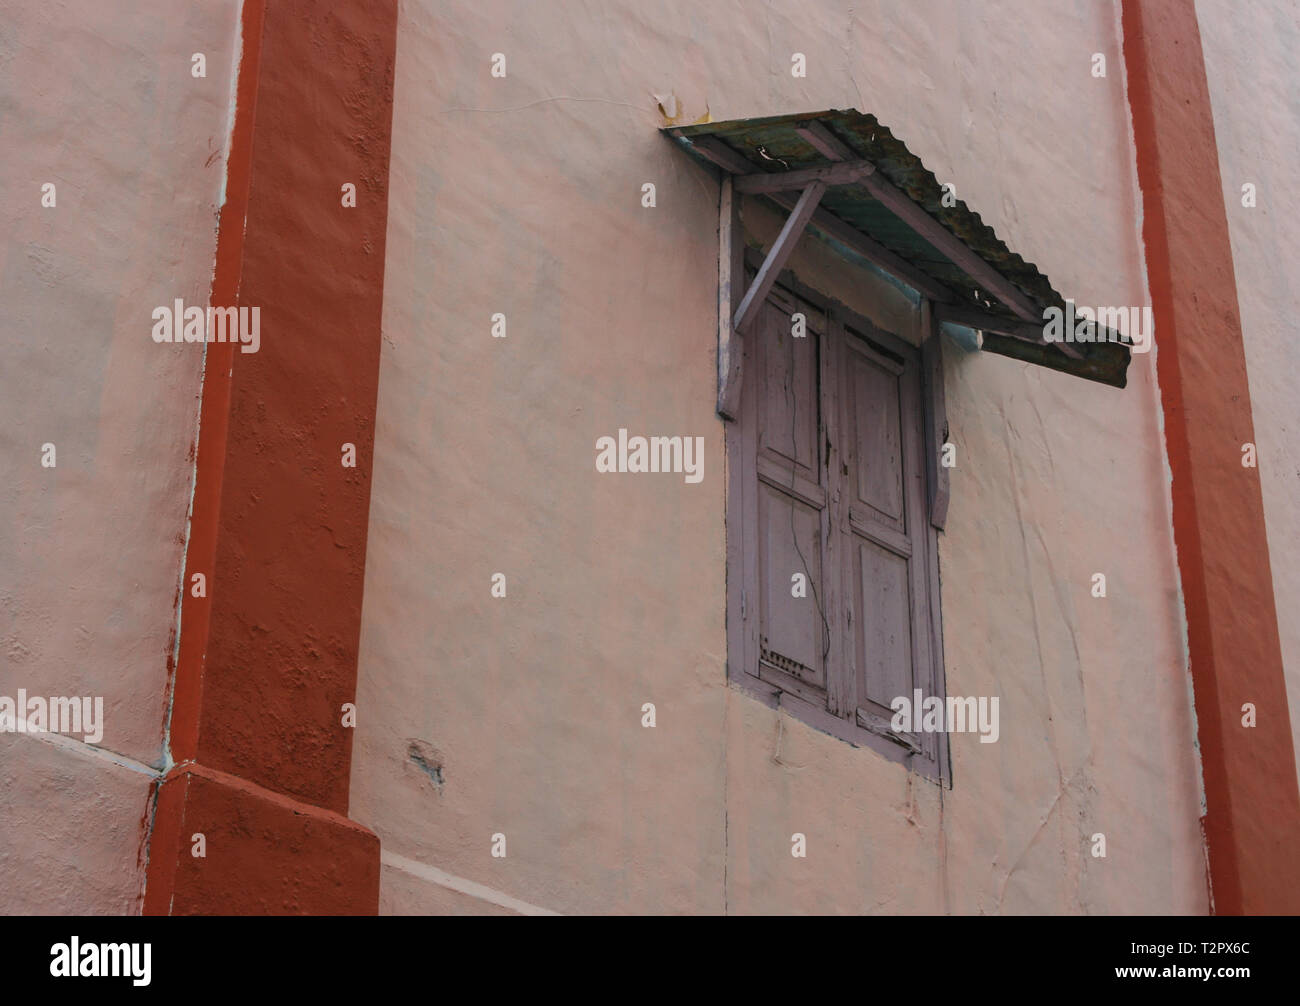 Traditional building in the heritage district of Johor Bahru, Malaysia Stock Photo